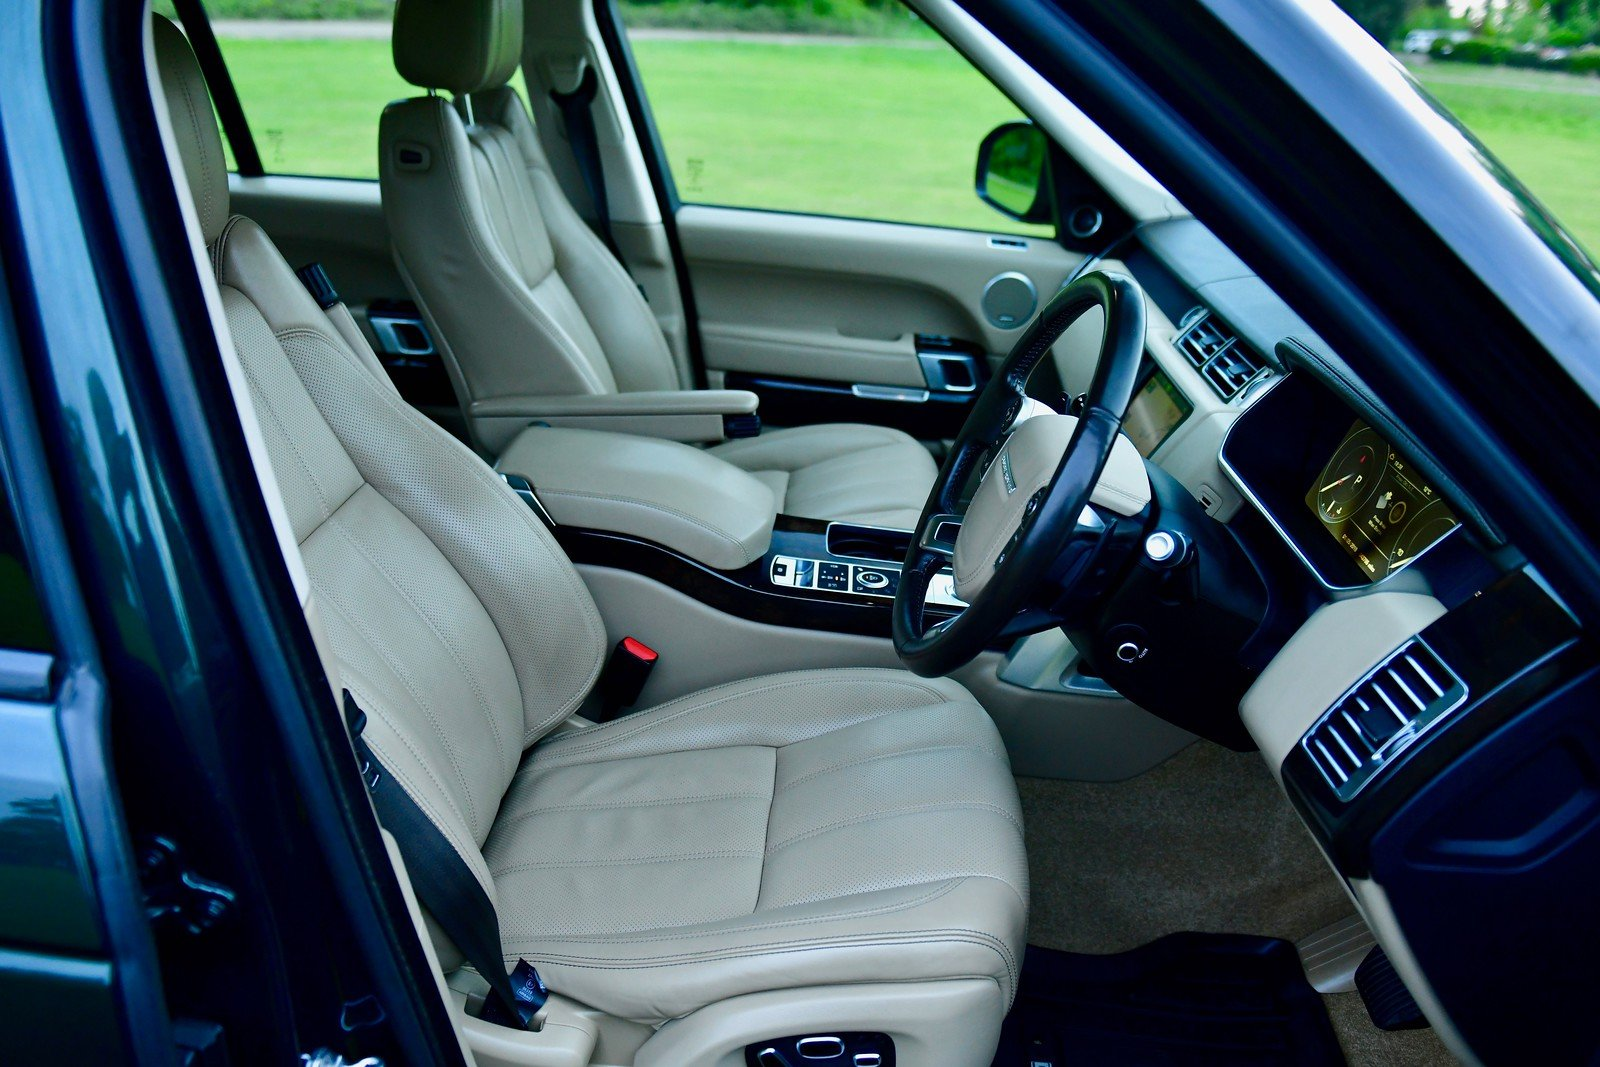 2014  LAND ROVER RANGE ROVER 4.4 SDV8 VOGUE SE 5DR AUTOMATIC SOLD (picture 5 of 6)